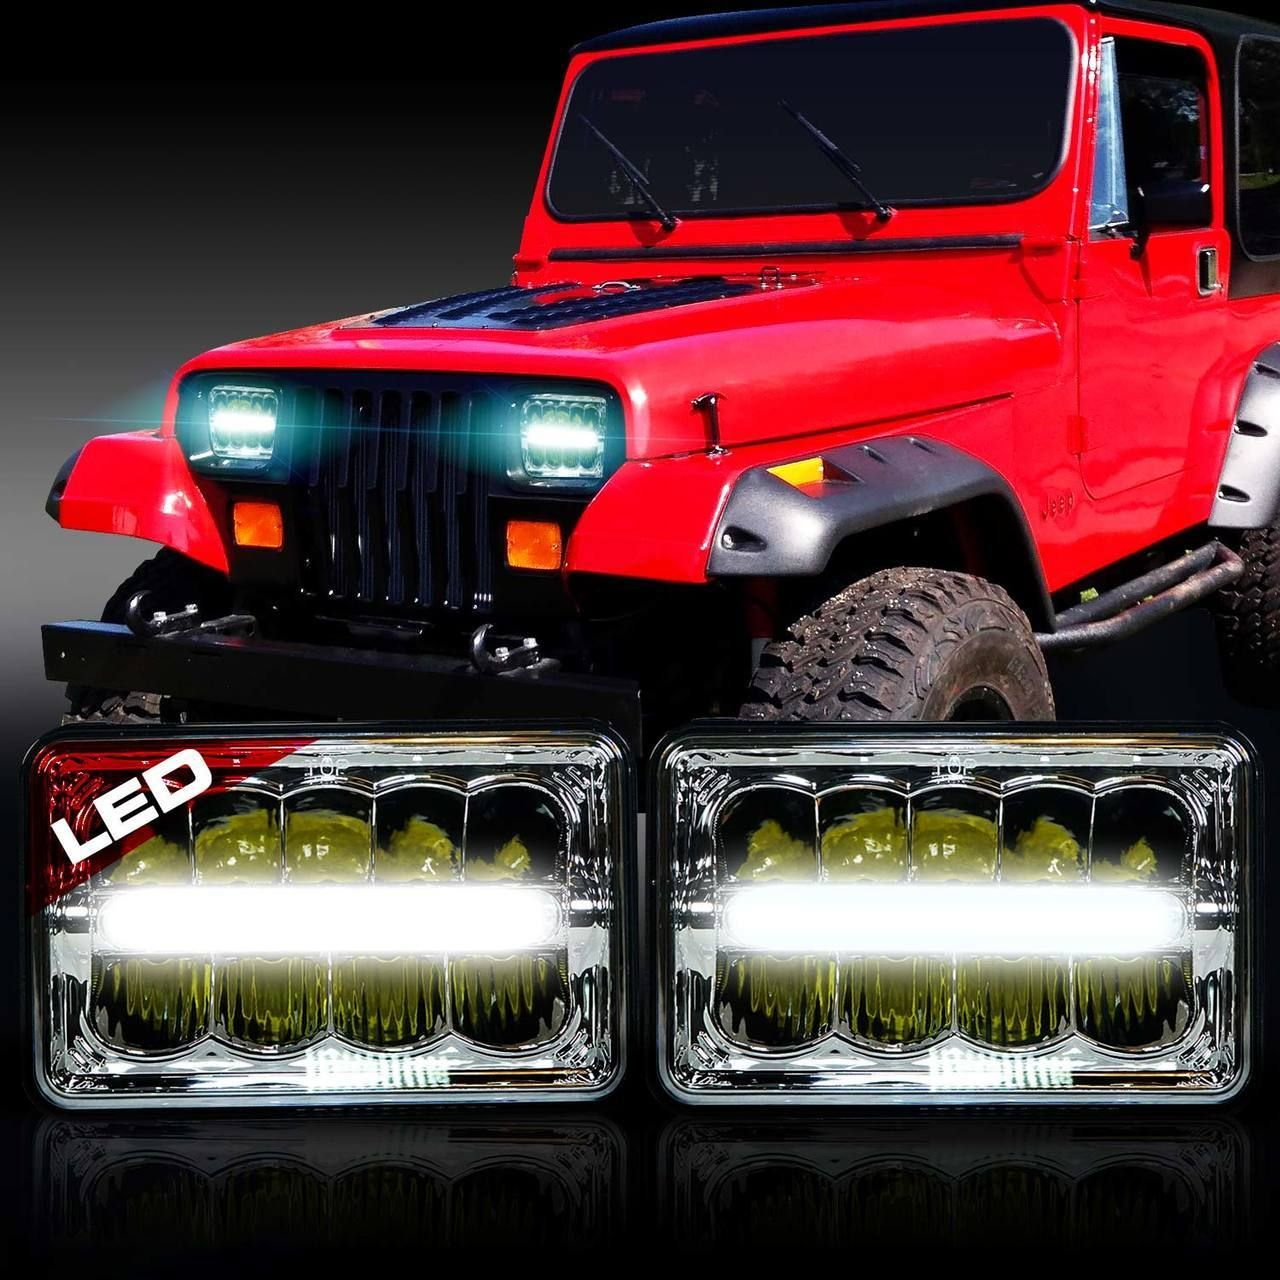 Parts And Accessories For Jeep Wrangler JK, JK, TJ. Wrangler Aftermarket  Parts Store